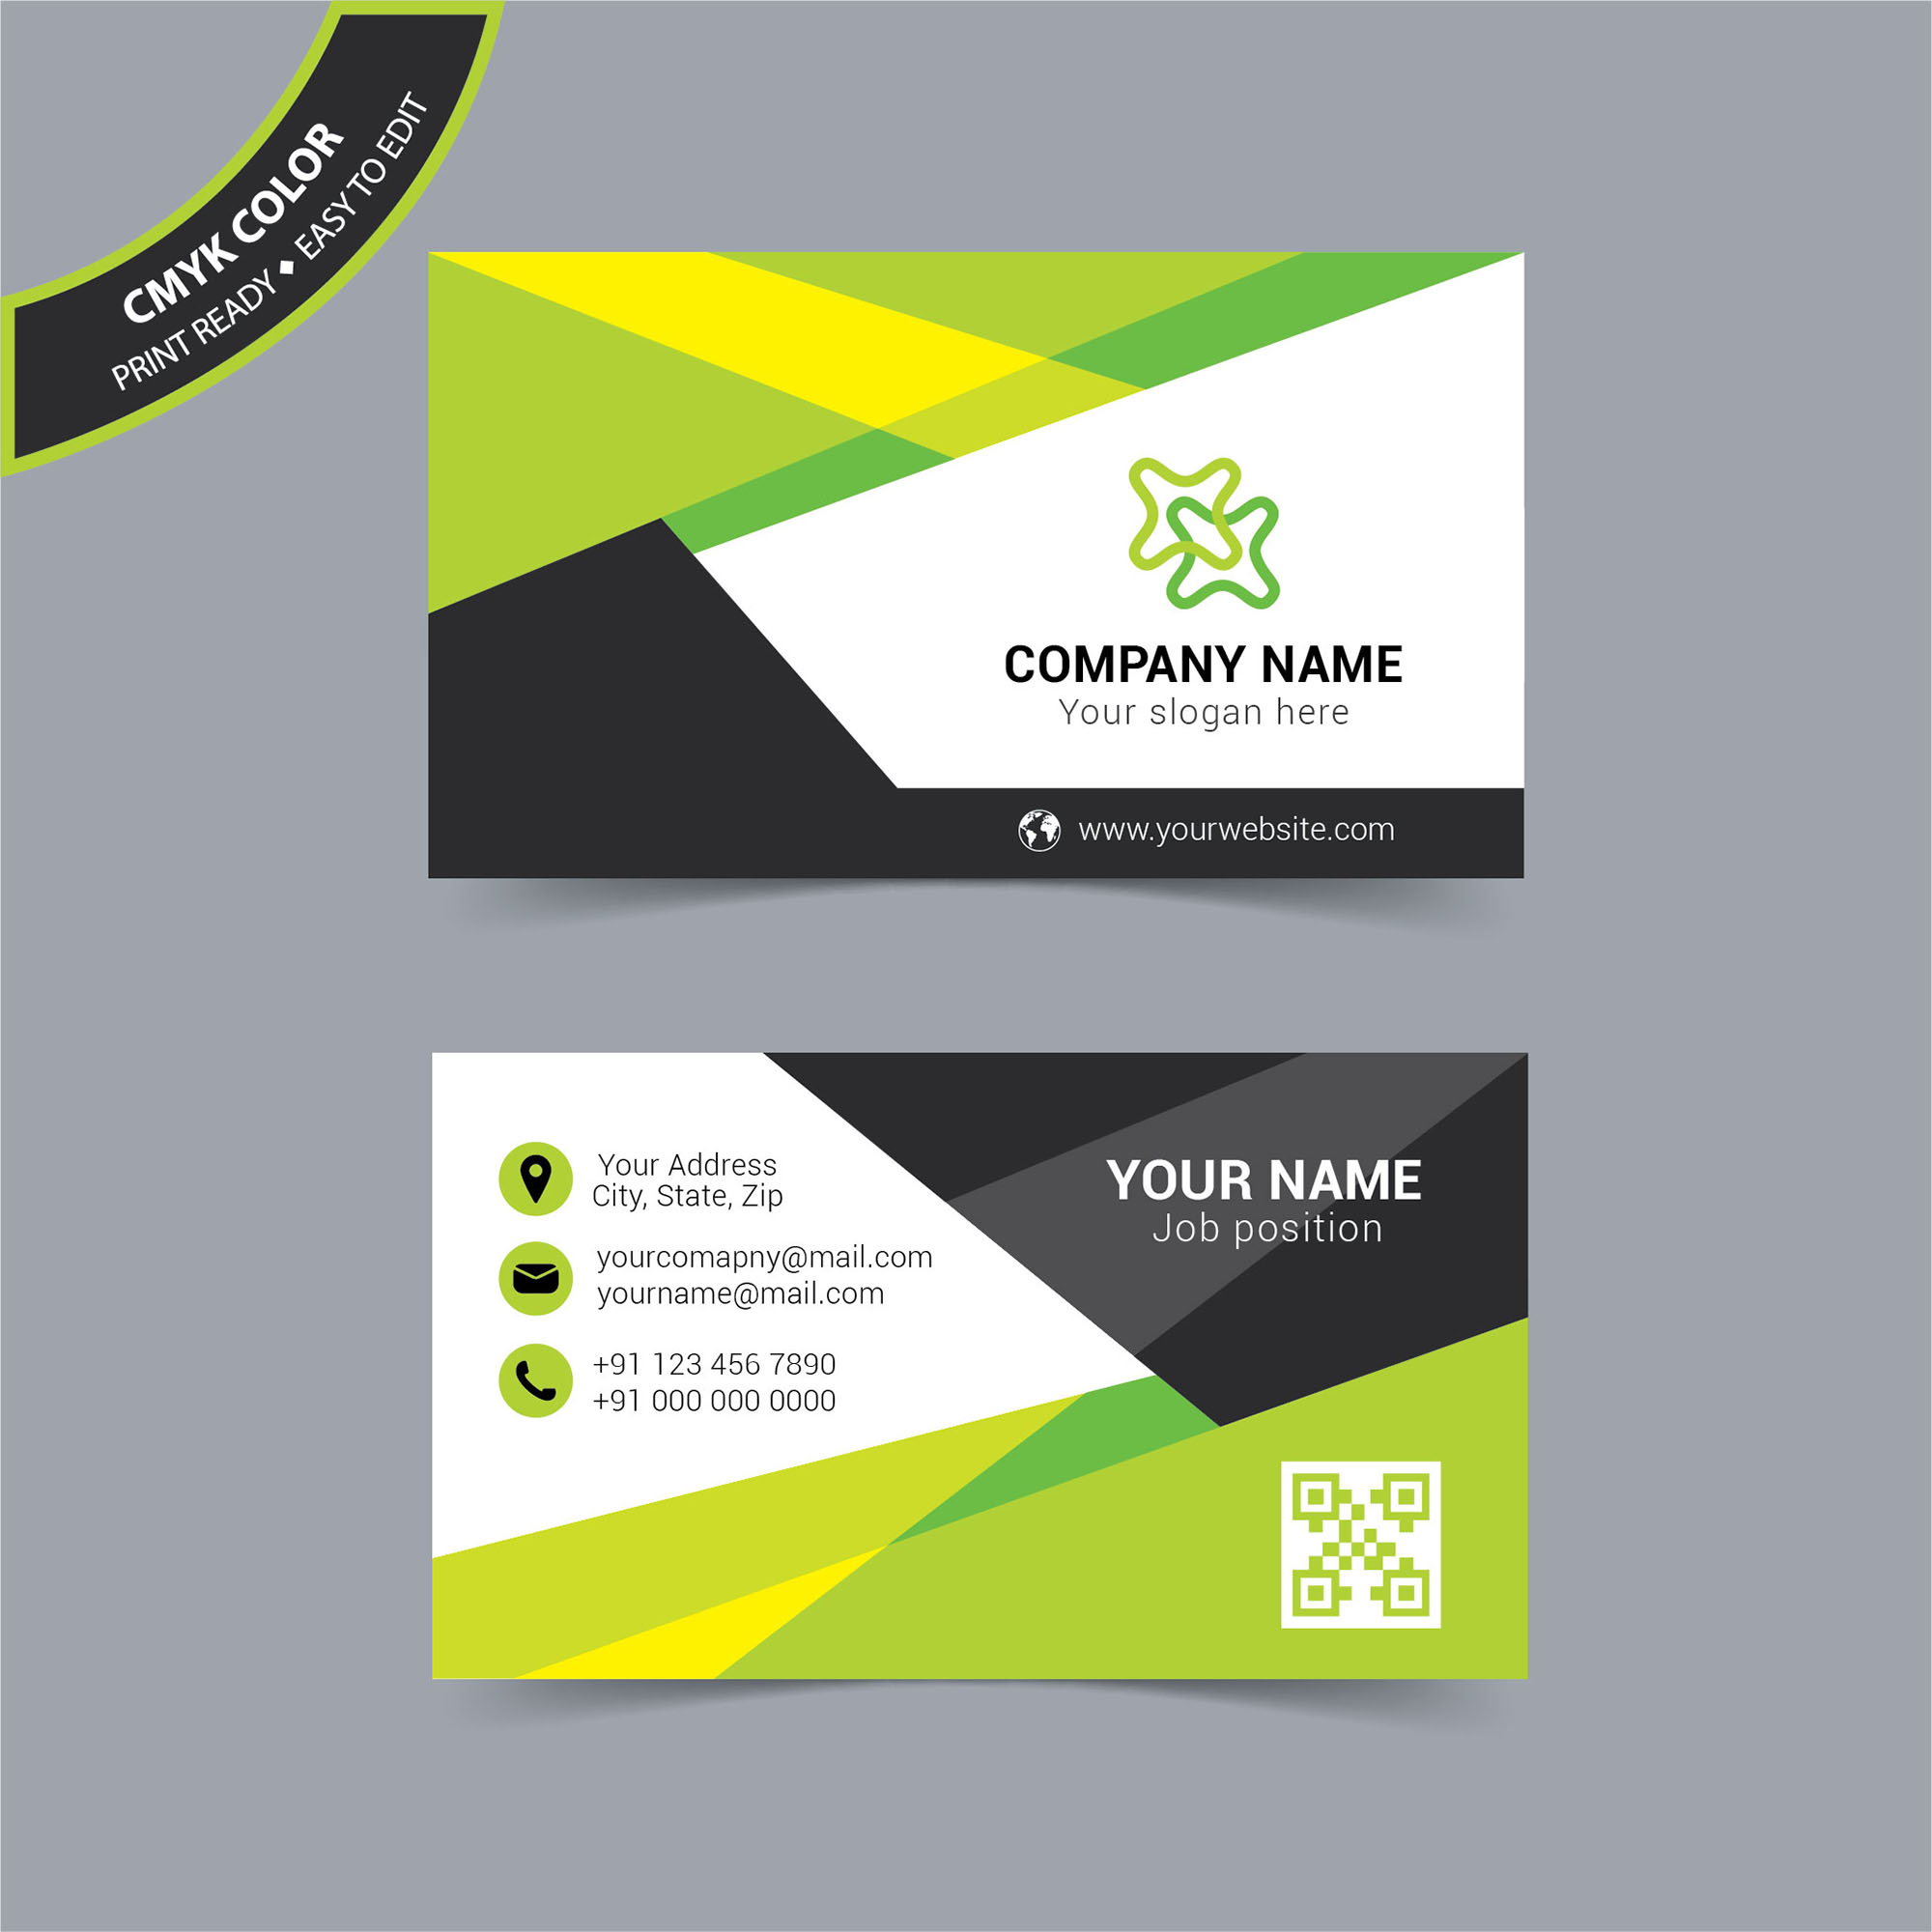 Modern colorful business card design free download wisxi business card business cards business card design business card template design templates flashek Gallery